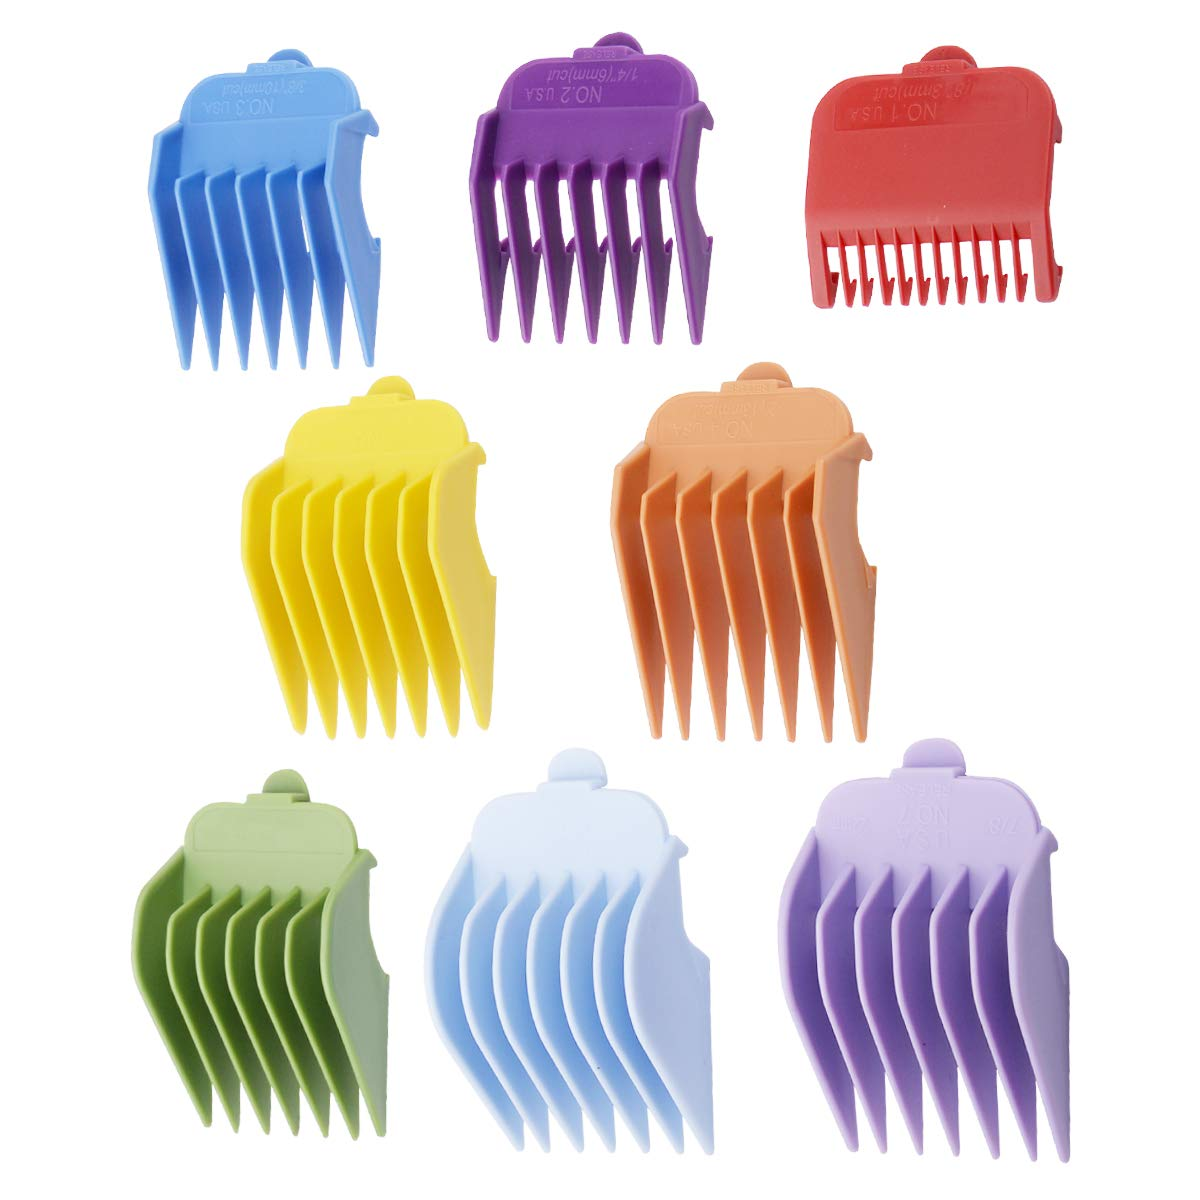 "Professional Hair Clippers Guides Combs 8 pack - 1/8"" to 1 for Full Size Standard Adjustable Wahl Clippers/Trimmers #3170-400,Colorful"